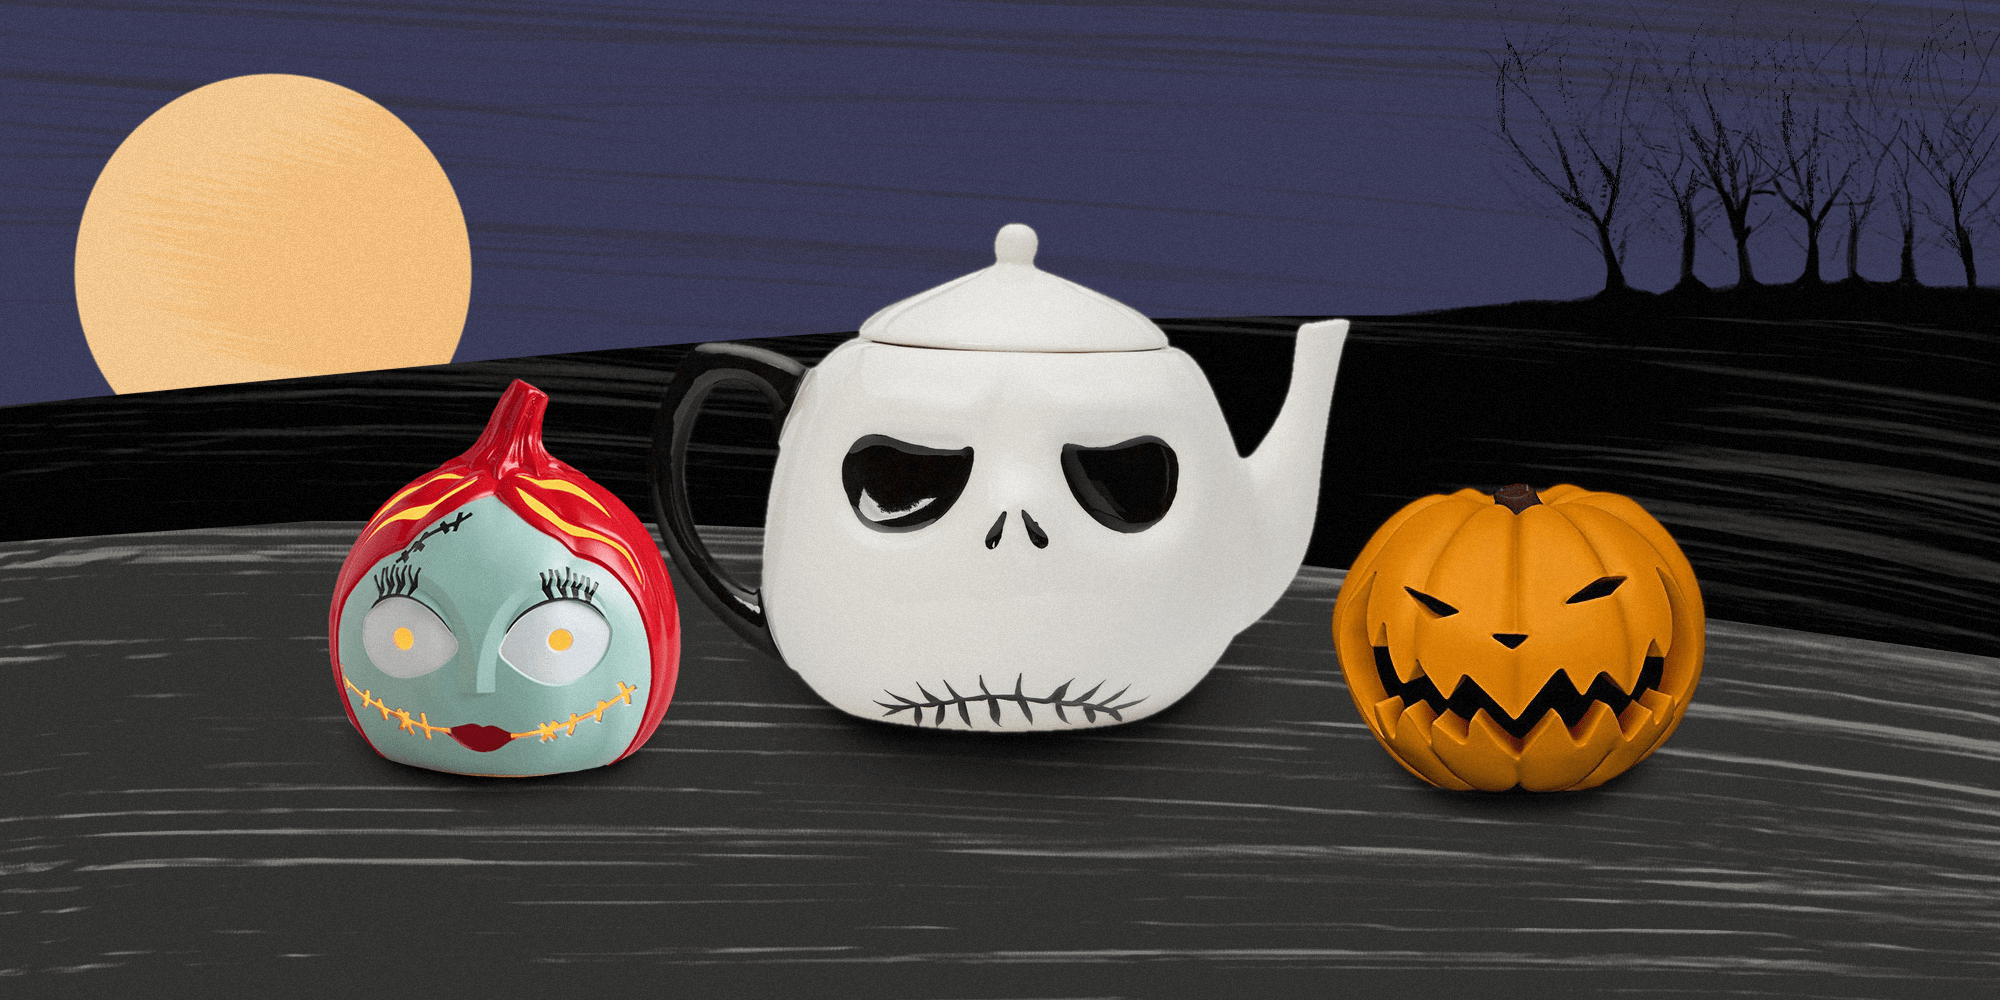 Nightmare Before Christmas Halloween Decorations For Sale